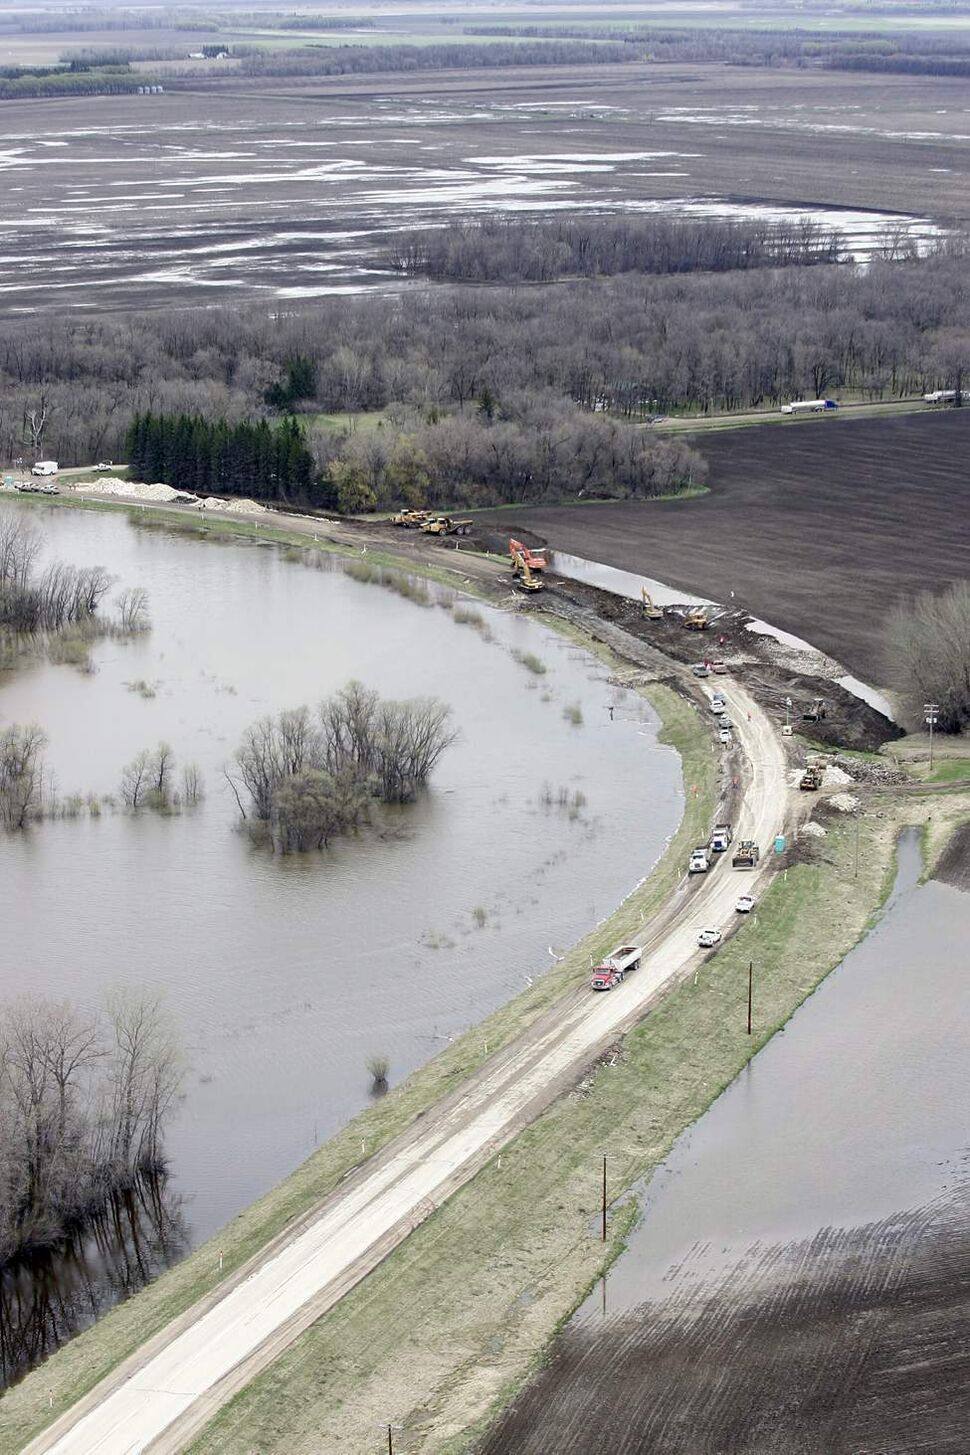 An aerial photo showns the Assiniboine River and the Hoop and Holler Bend, where the province plans to create a controlled breach in Manitoba Wednesday. Prime Minister Stephen Harper toured the Brandon flood area Wednesday. May 11, 2011 (THE CANADIAN PRESS/John Woods)